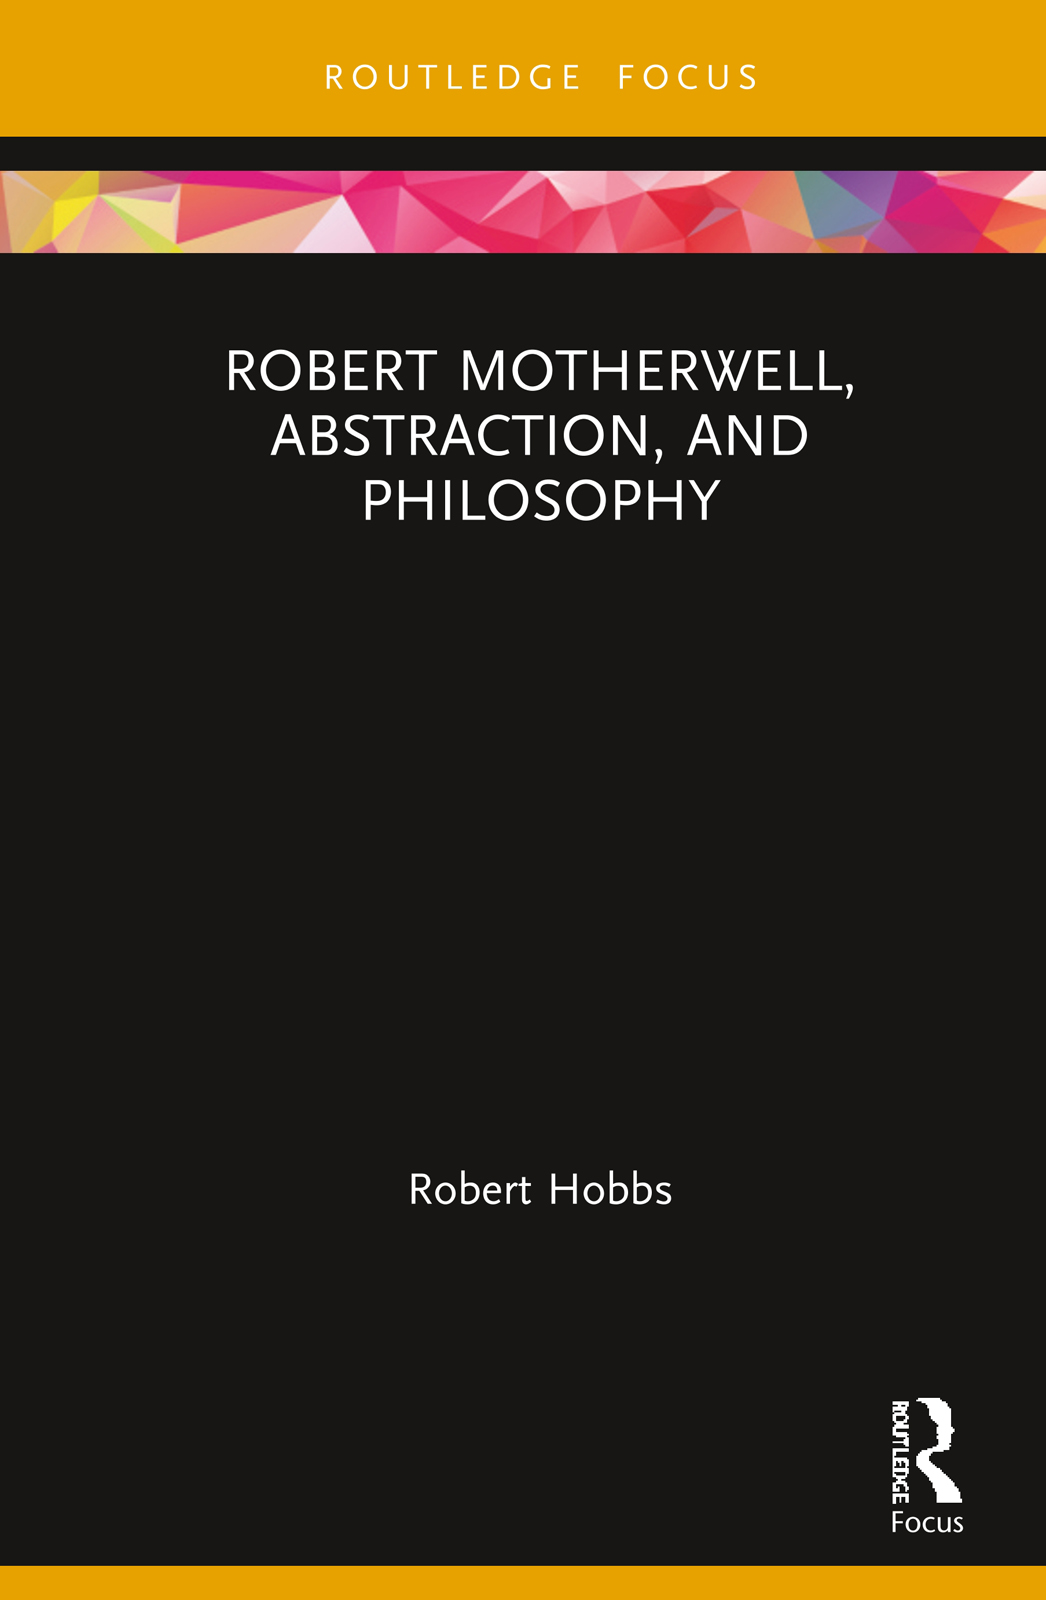 Robert Motherwell, Abstraction, and Philosophy